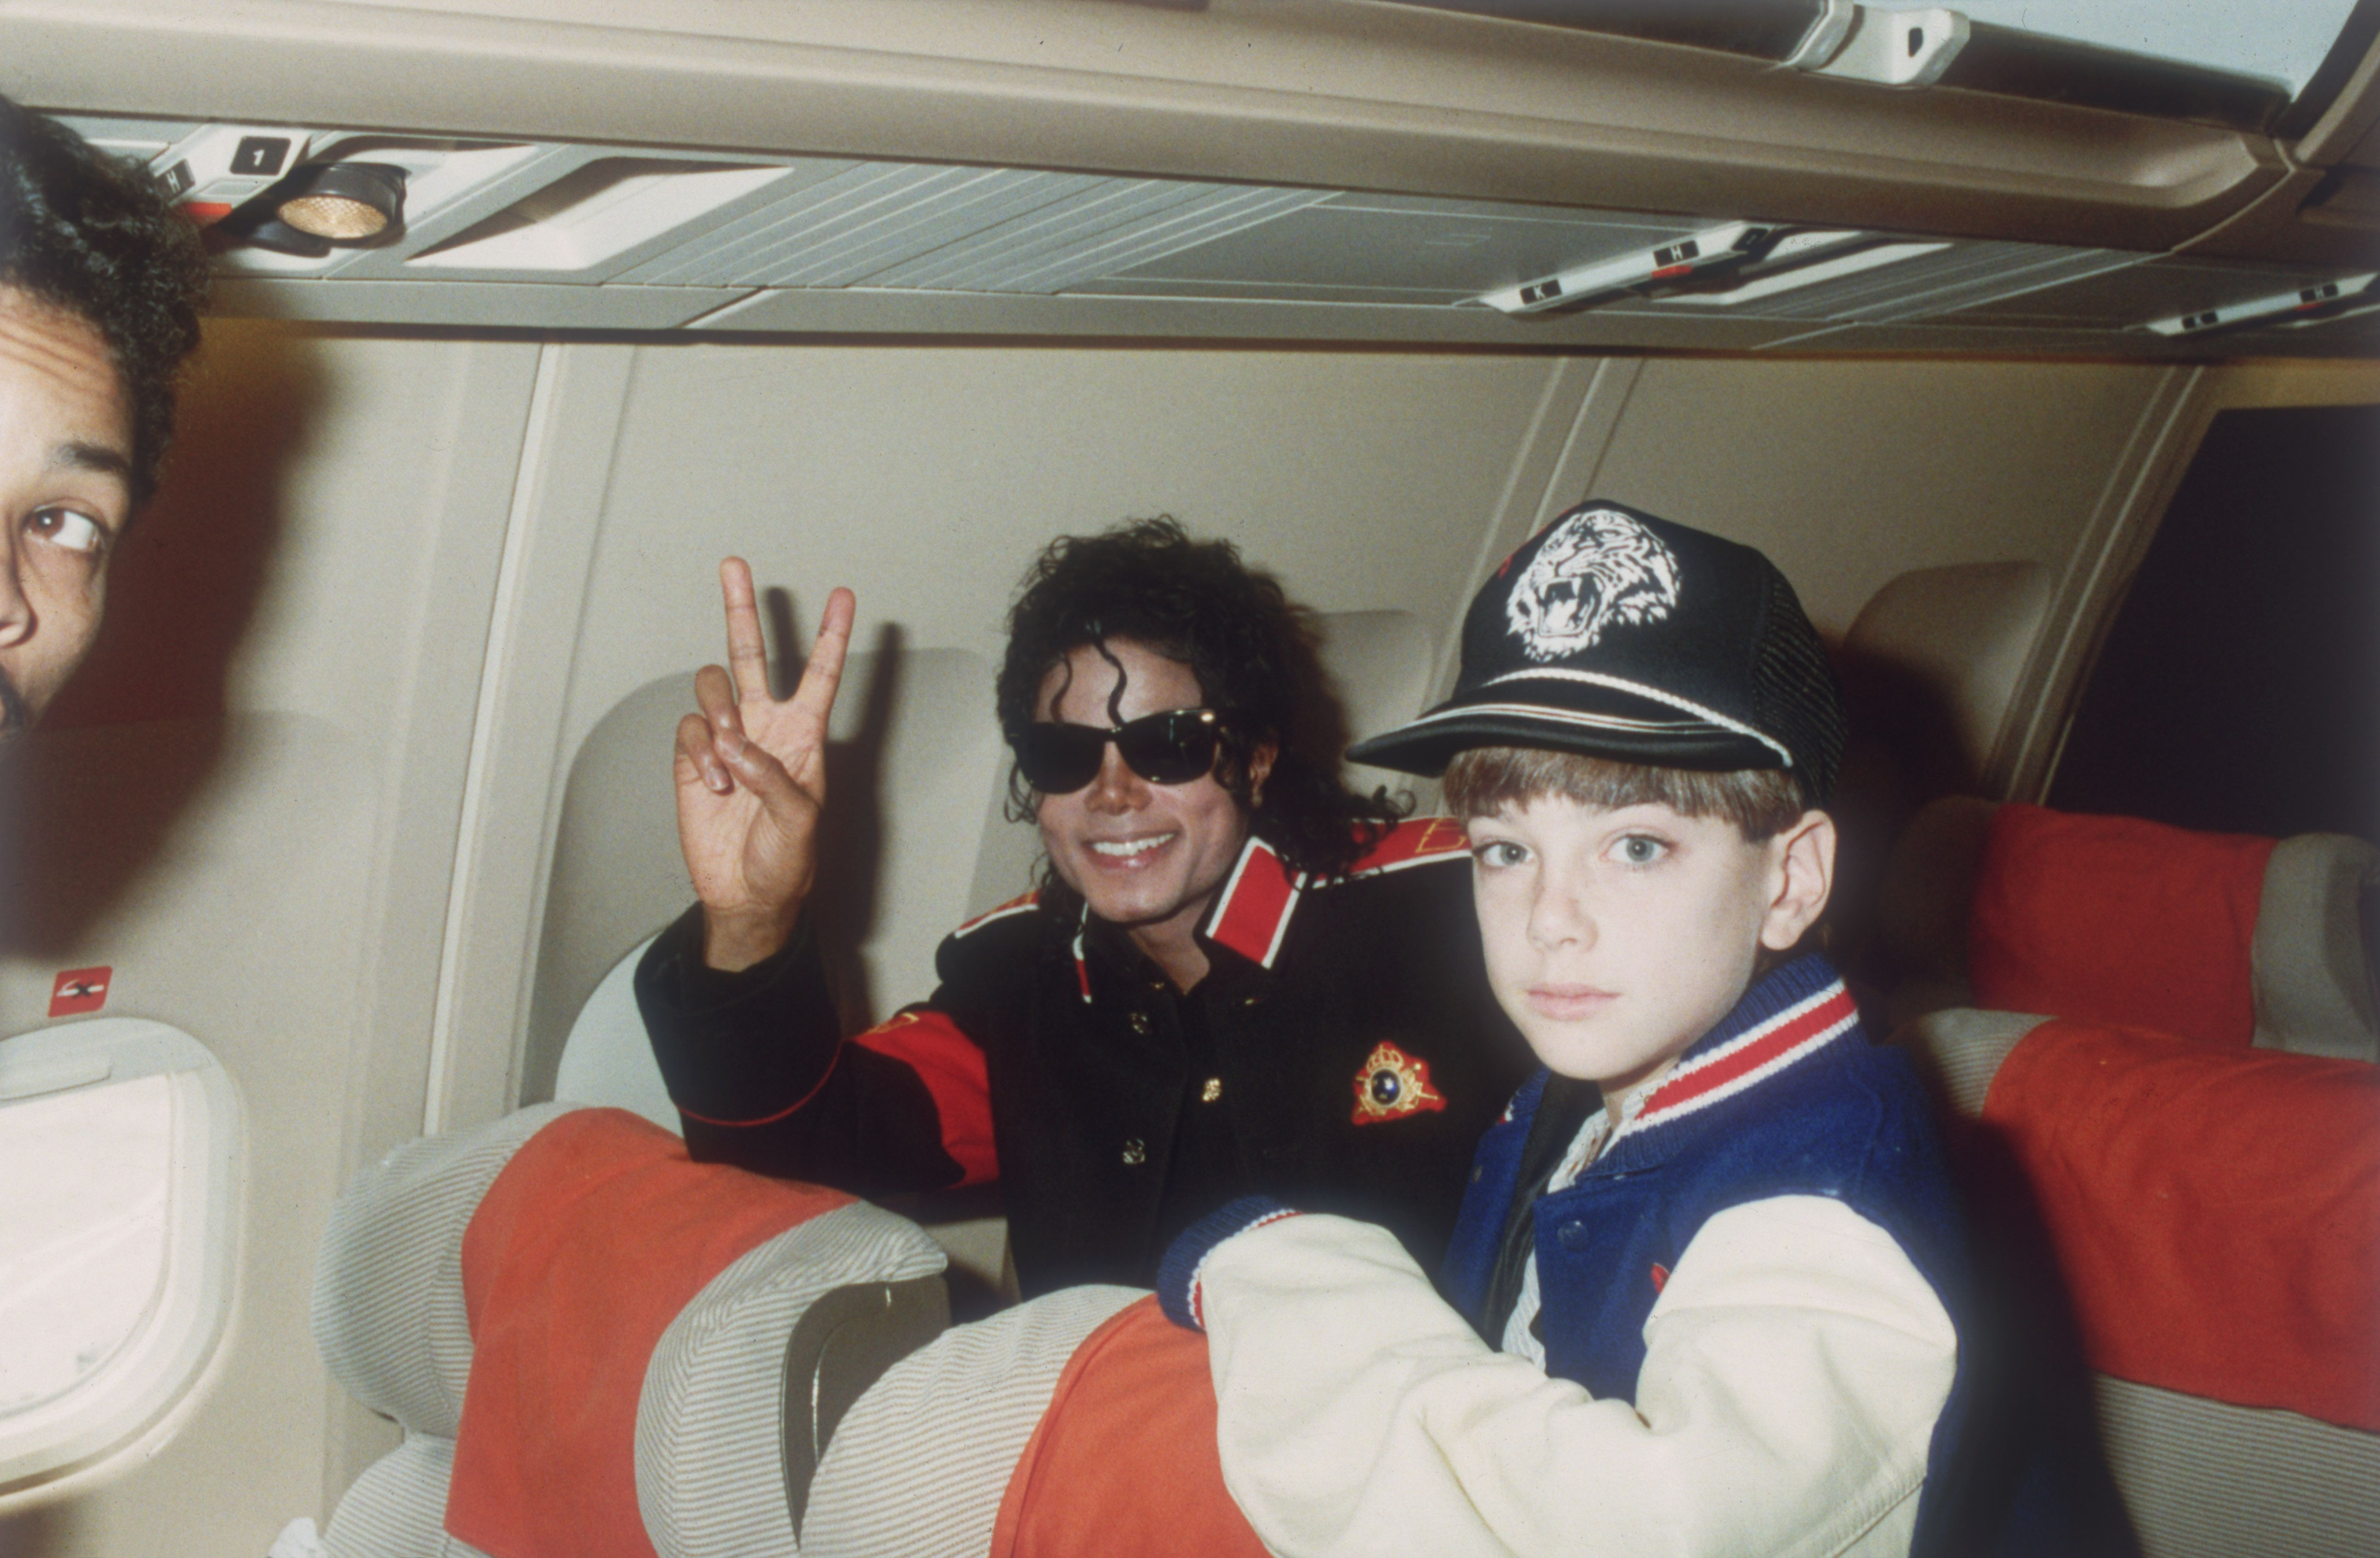 Michael Jackson with 10 year old Jimmy Safechuck on the tour plane...